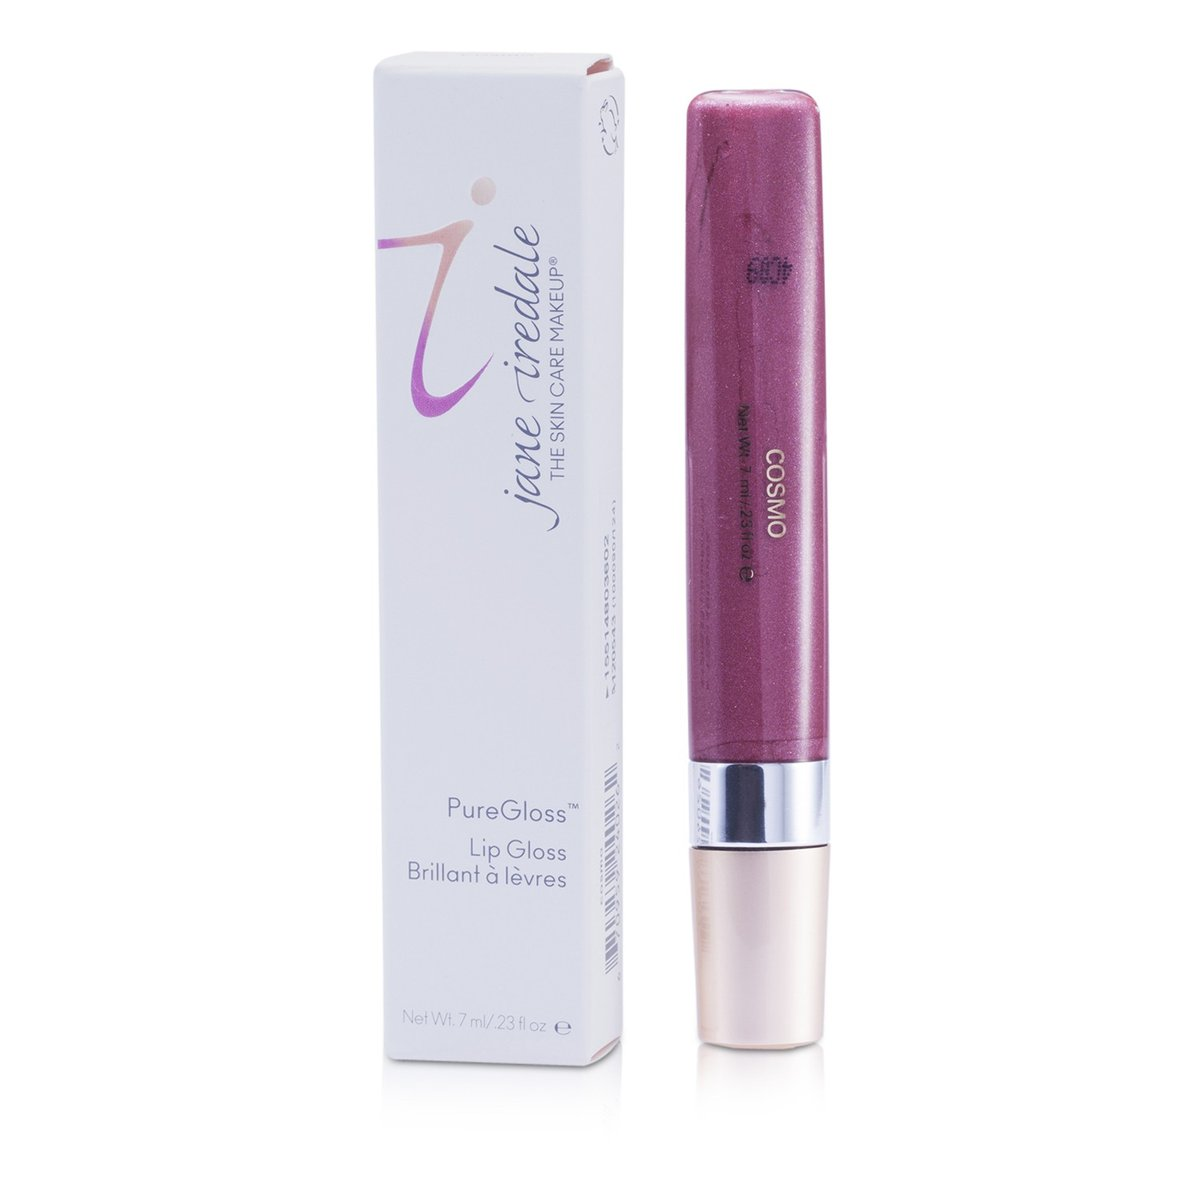 PureGloss Lip Gloss (New Packaging) - Cosmo  -[Parallel Import Product]